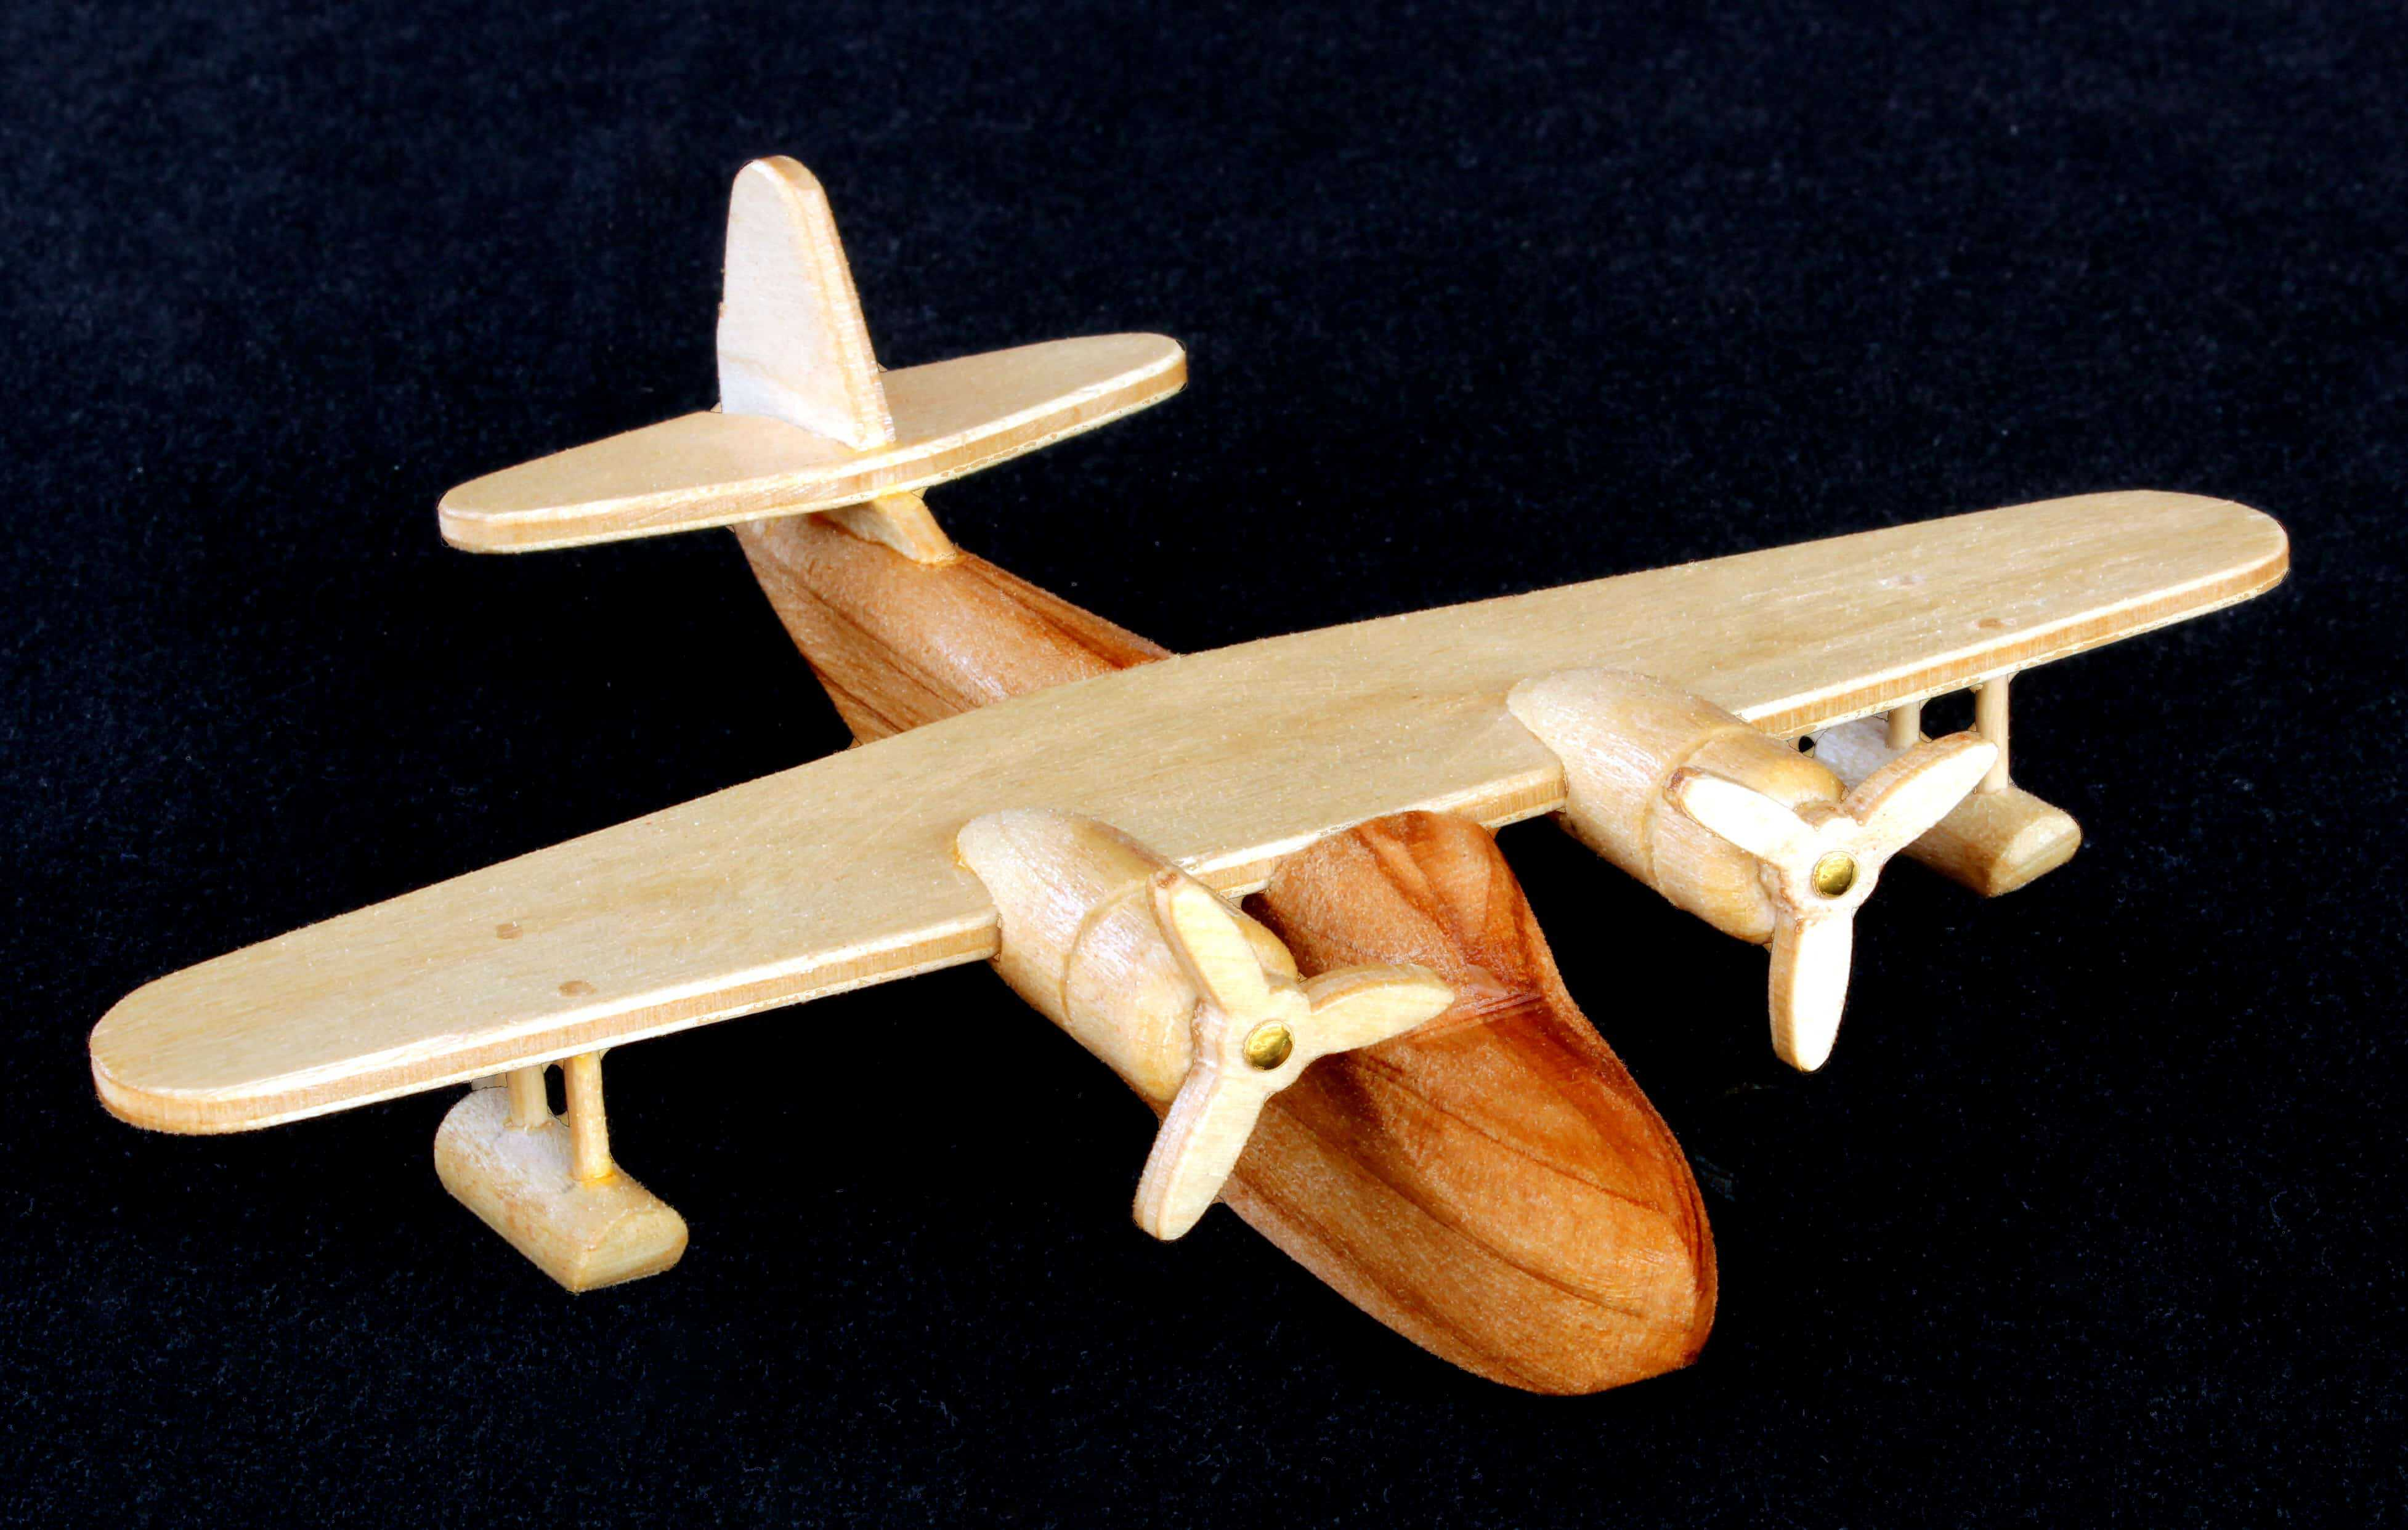 aviation history in wood deluxe woodworking plans